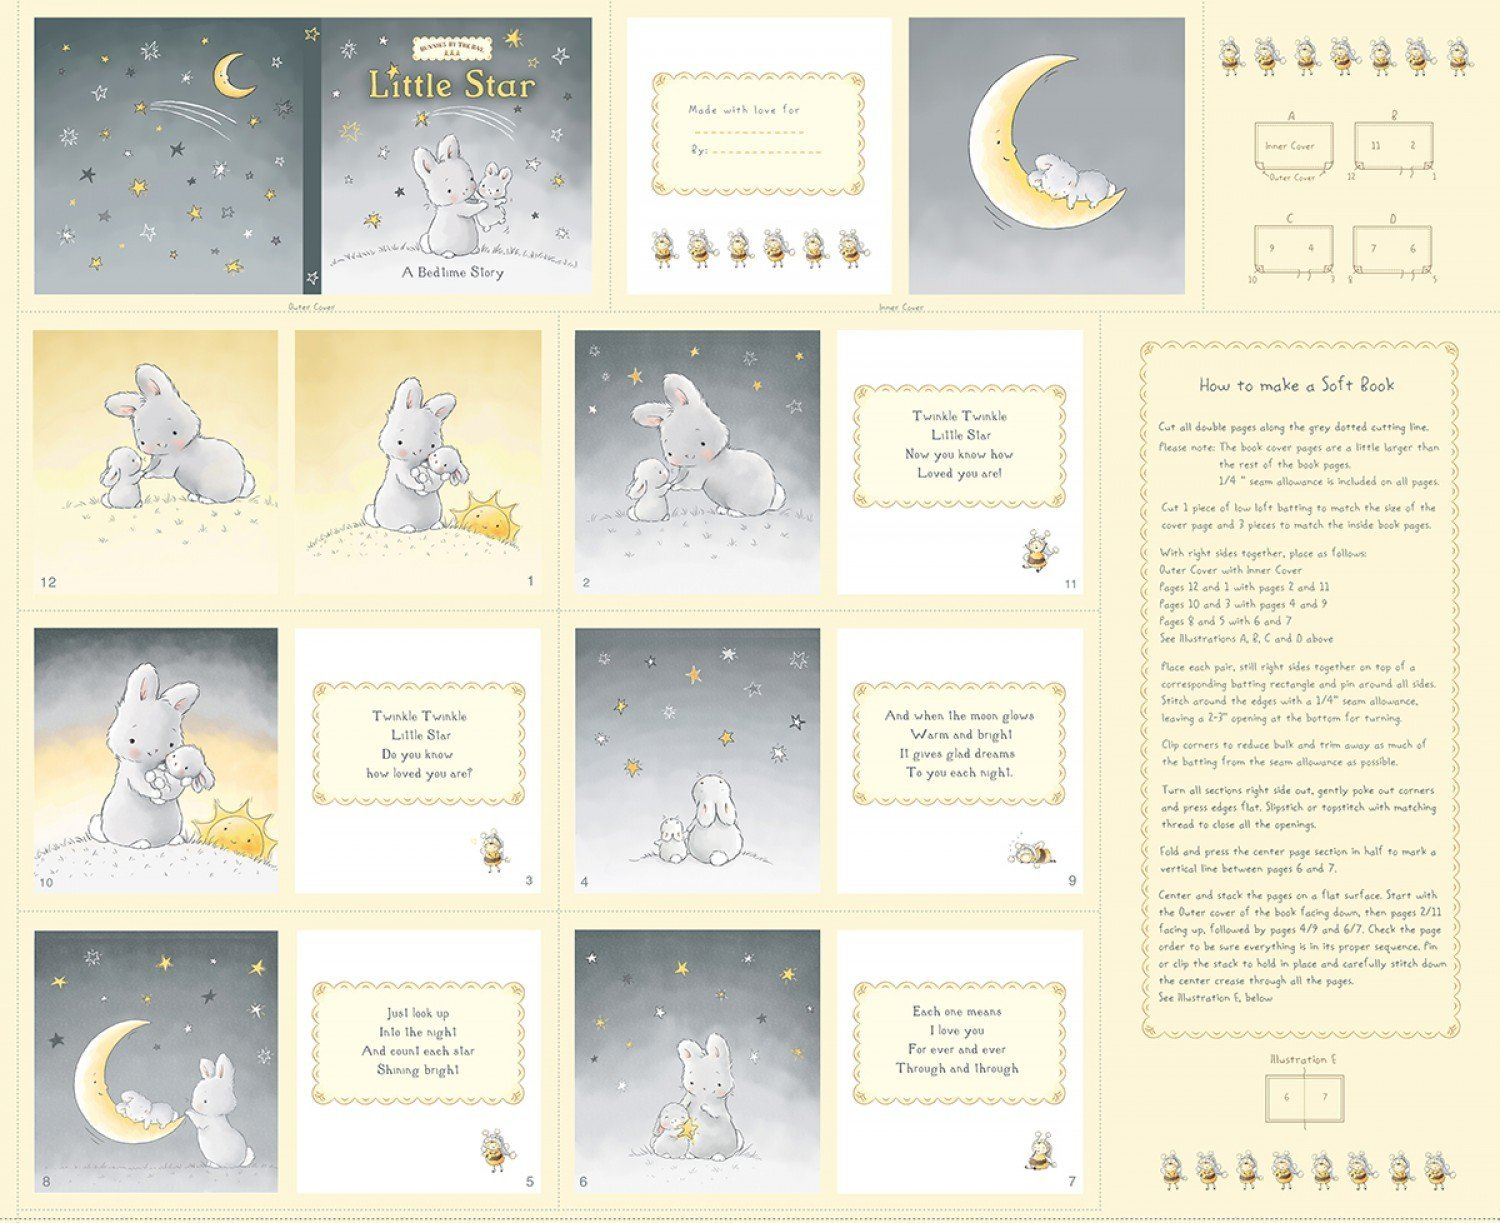 Little Star by Bunnies By The Bay for Timeless Treasures - Little Star Soft Book Bunny Panel C6448 Yellow